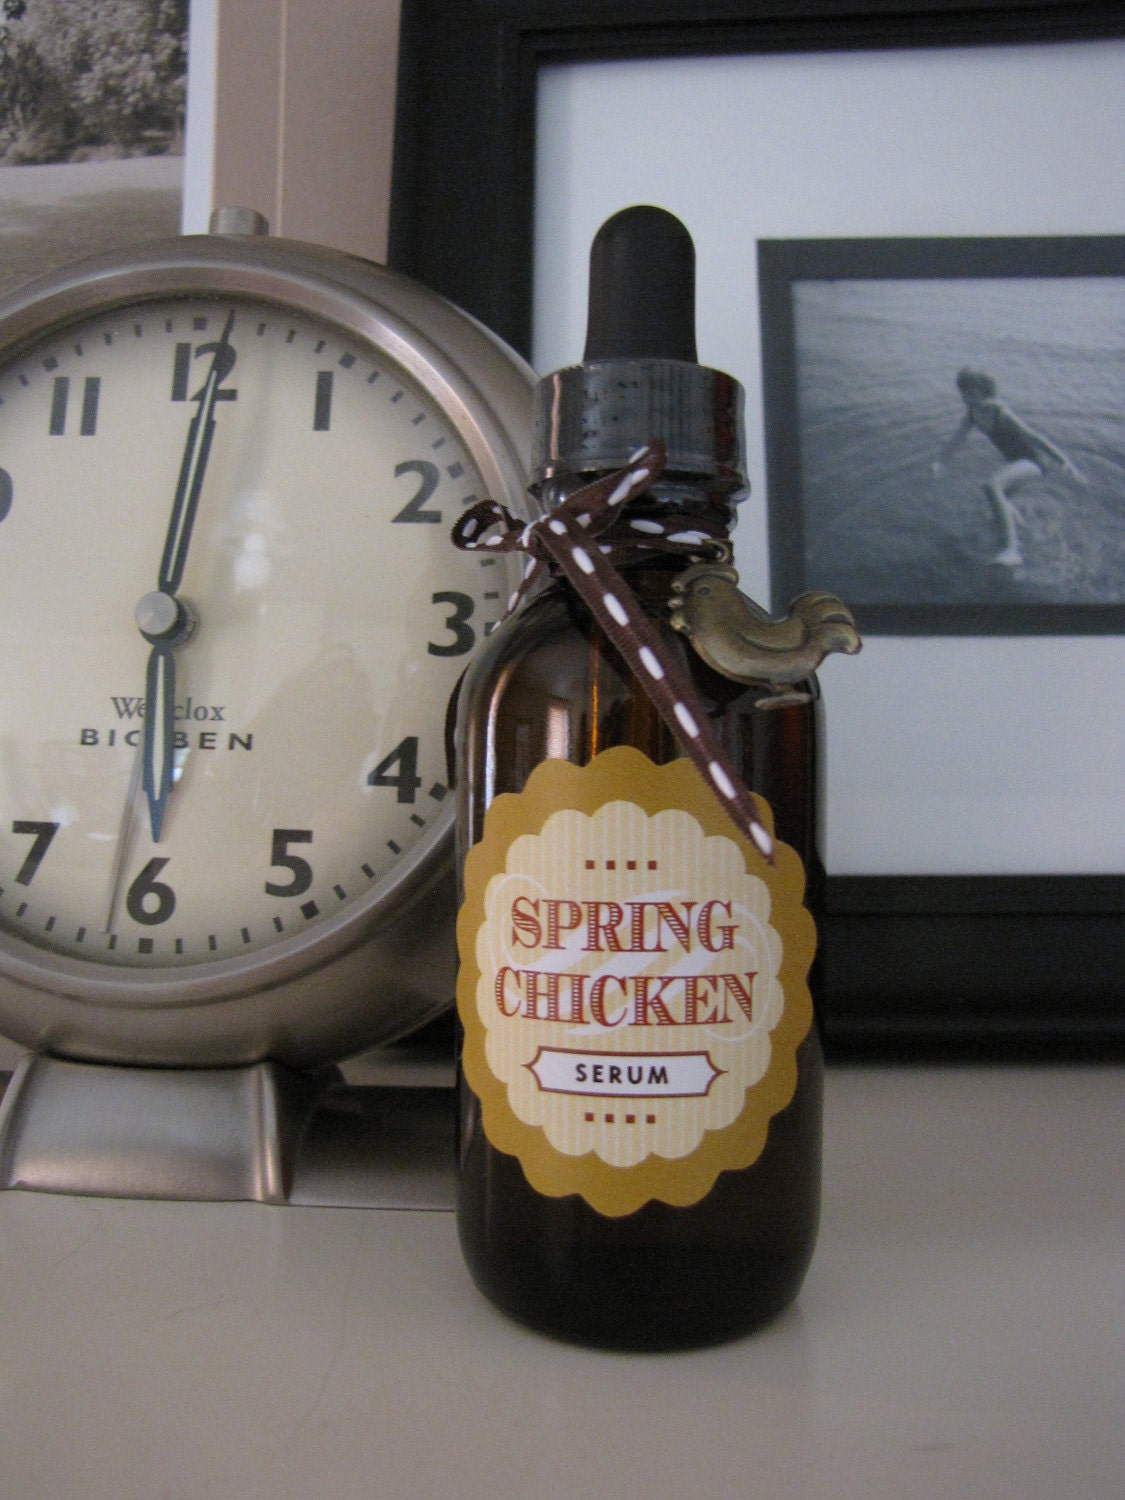 Anti-Aging 'Spring Chicken' Skin Serum